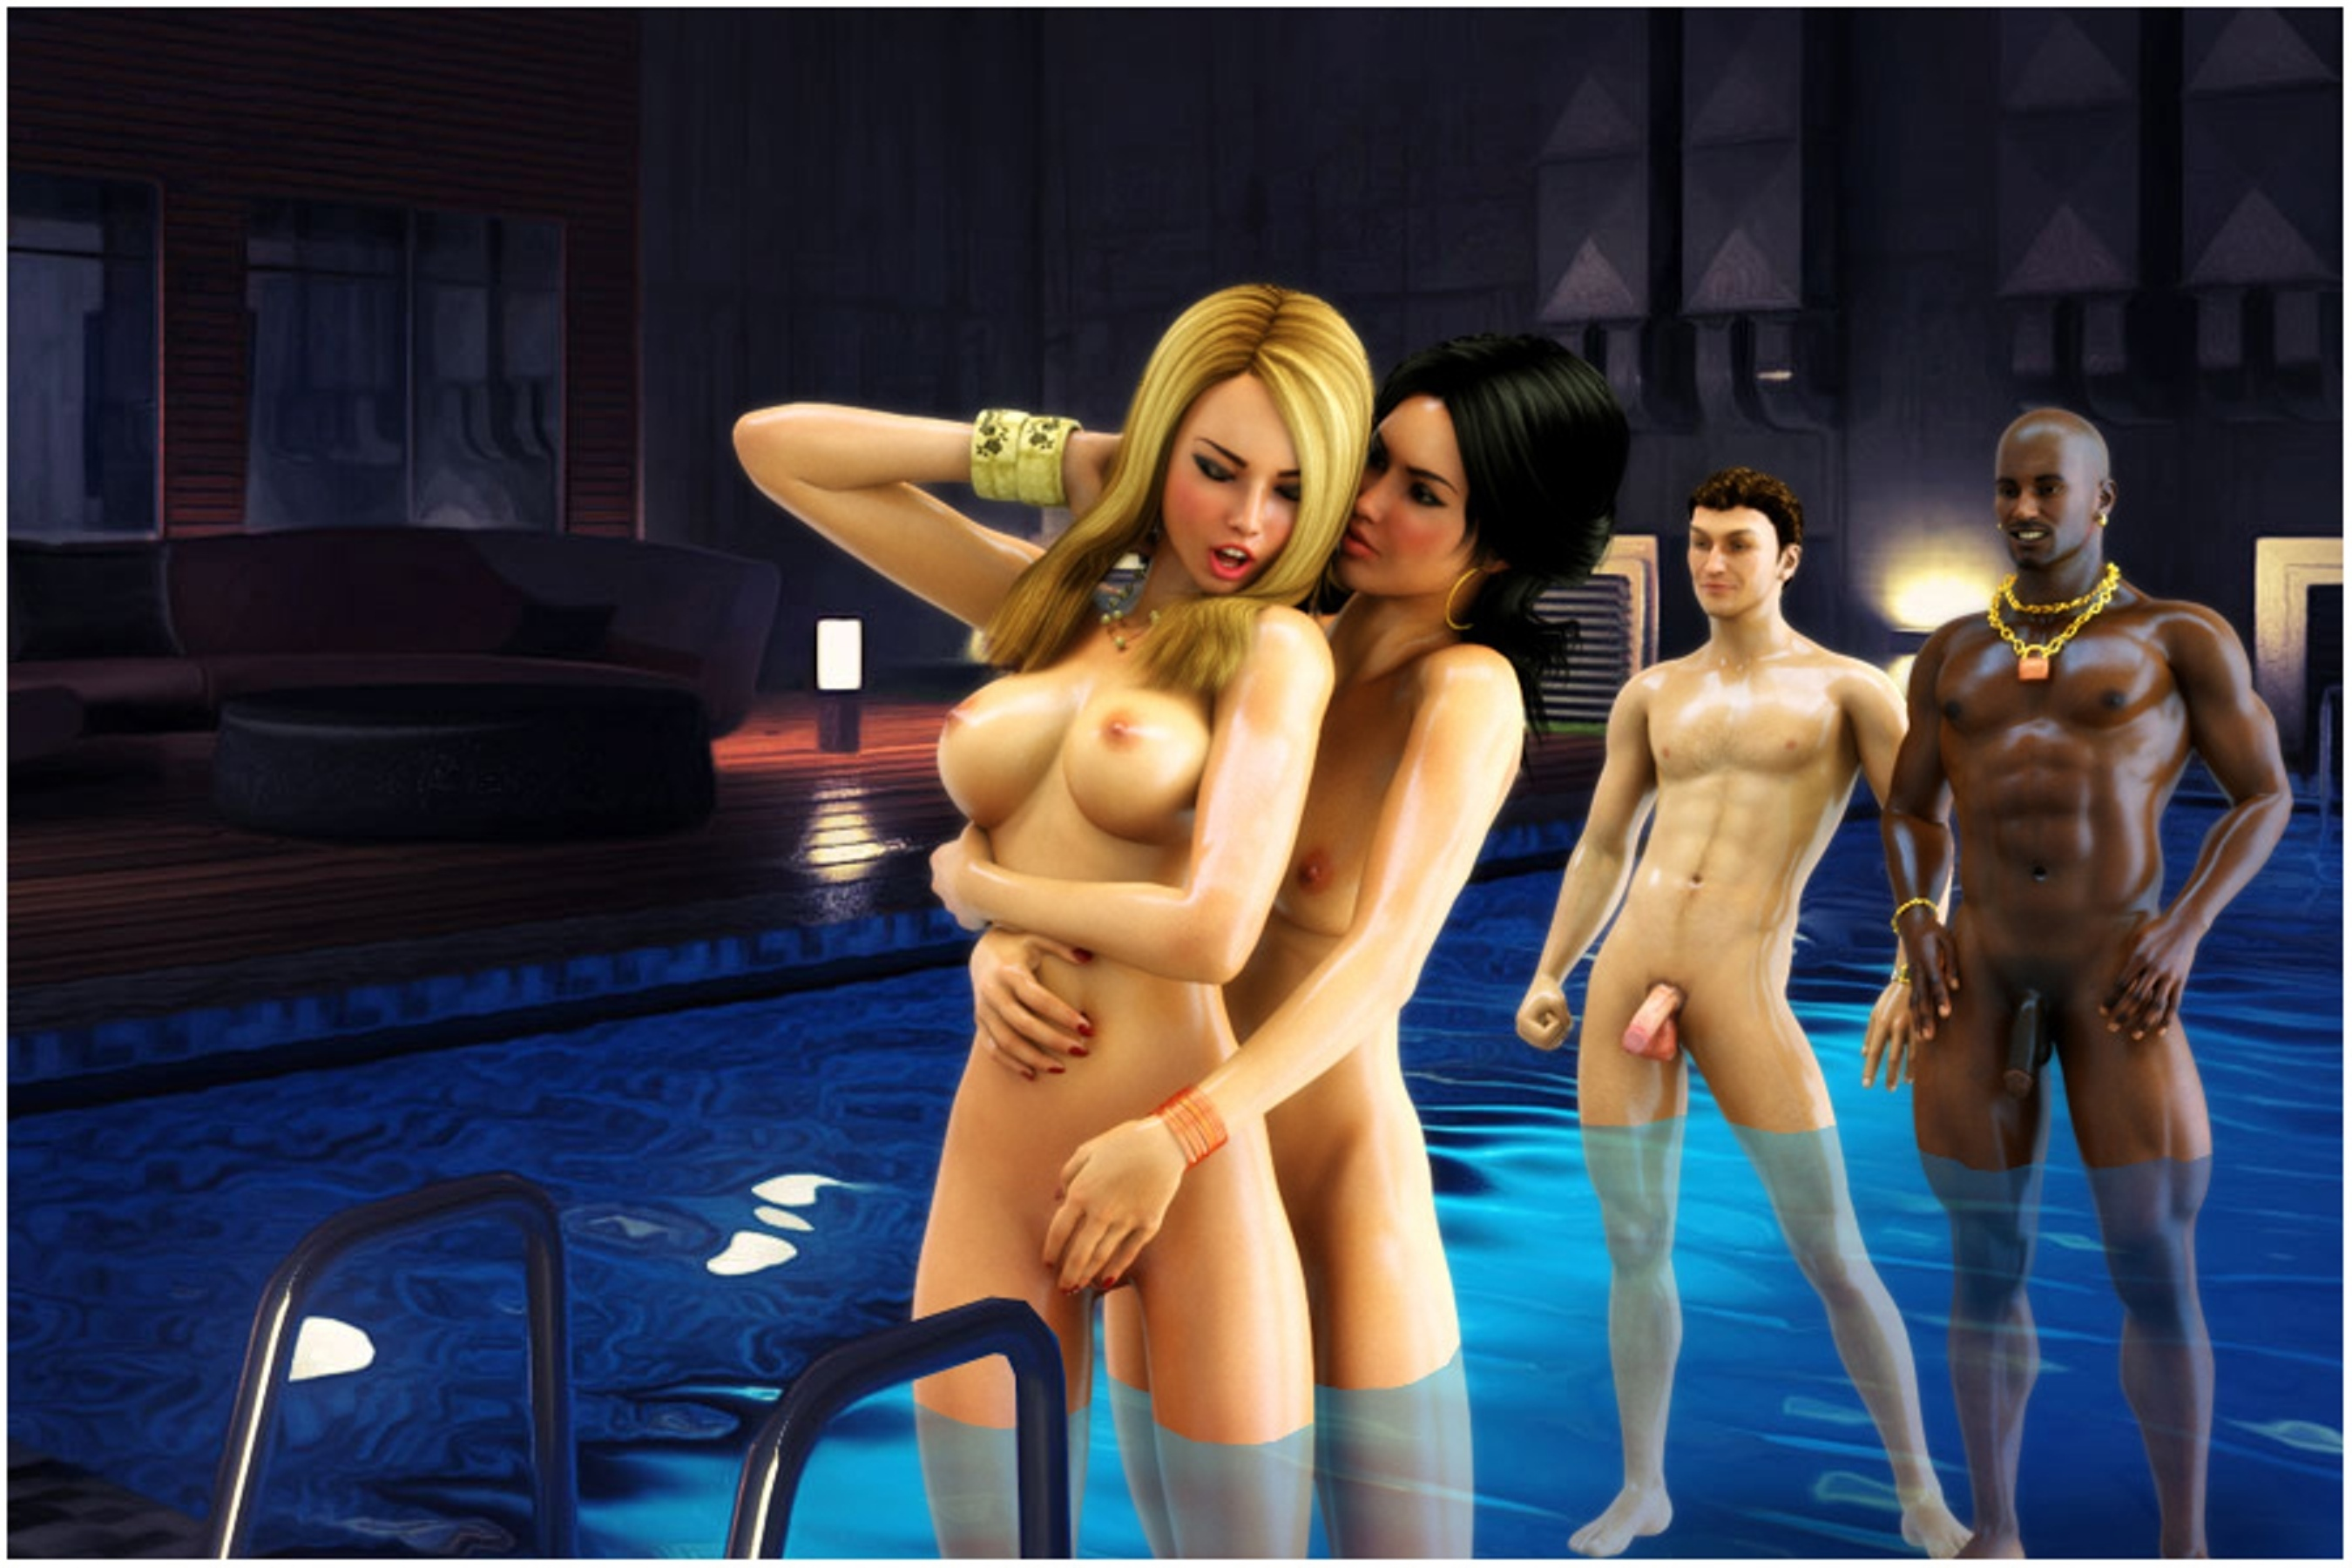 Microsoft Is Selling An Adult Game On Xbox, And It Will Ban You If You Take Screenshots